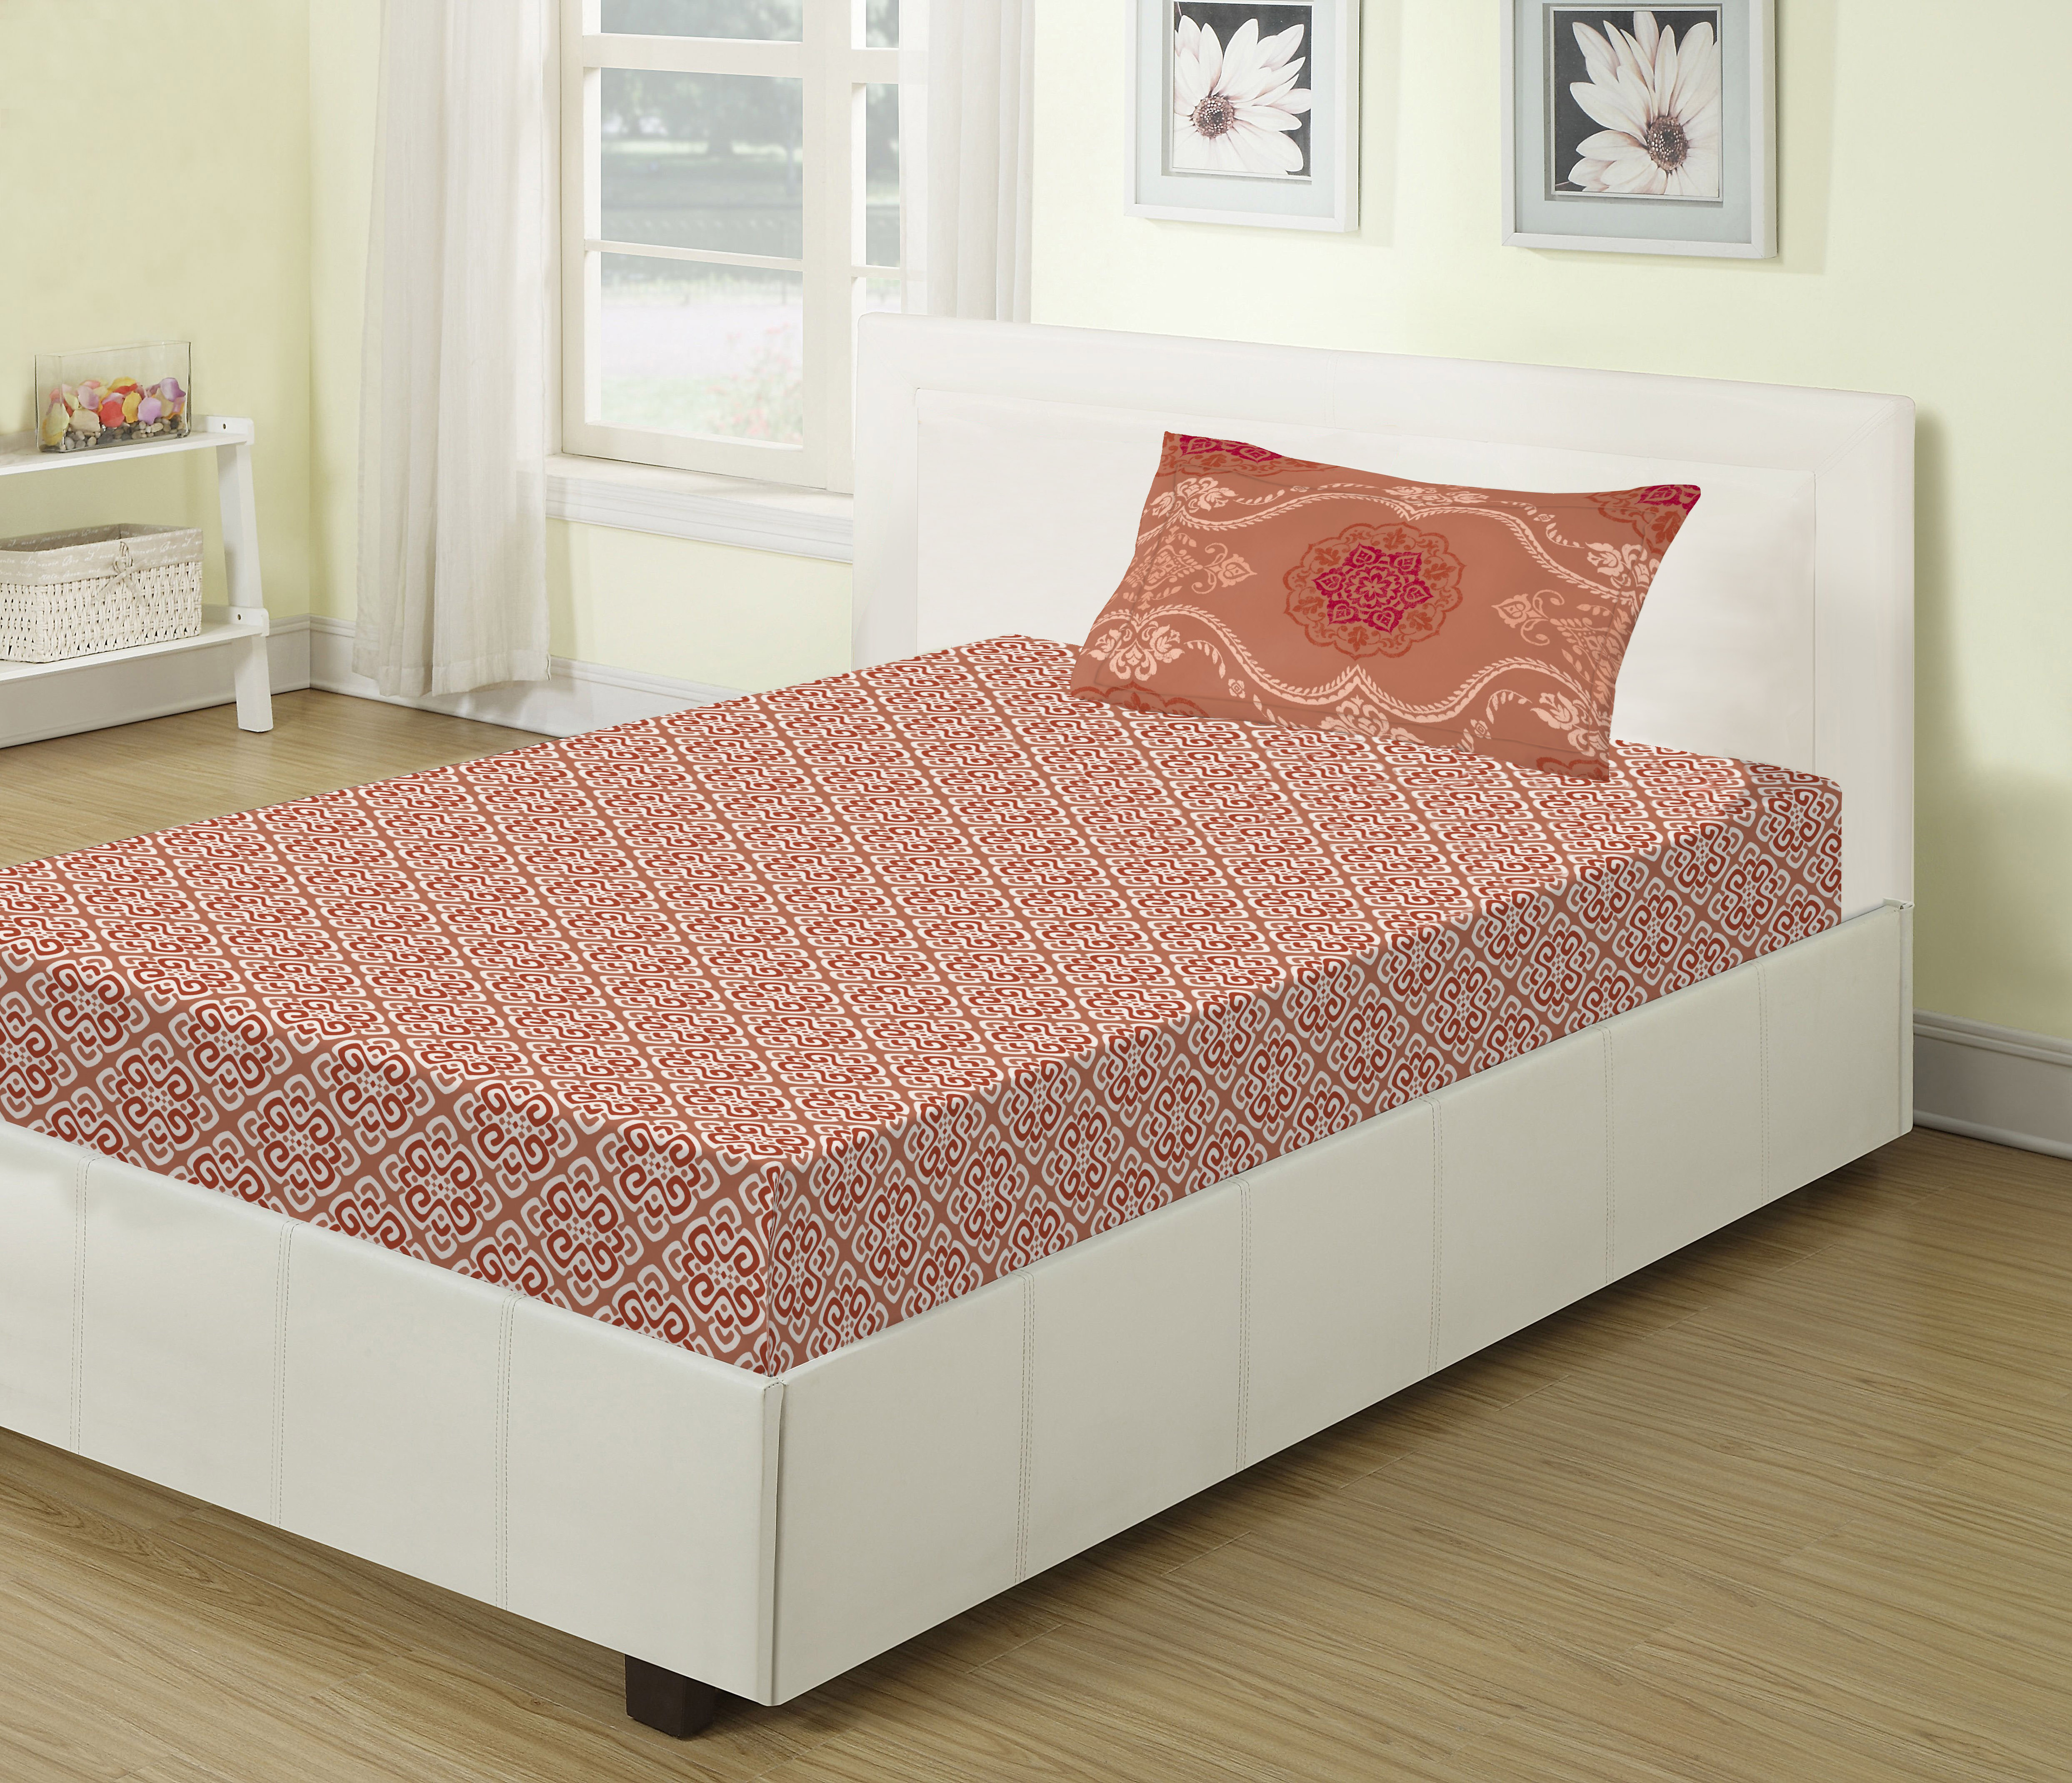 Emilia Single Bedsheet Set Rust Cotton Single Bed Sheets in Rust Colour by Living Essence